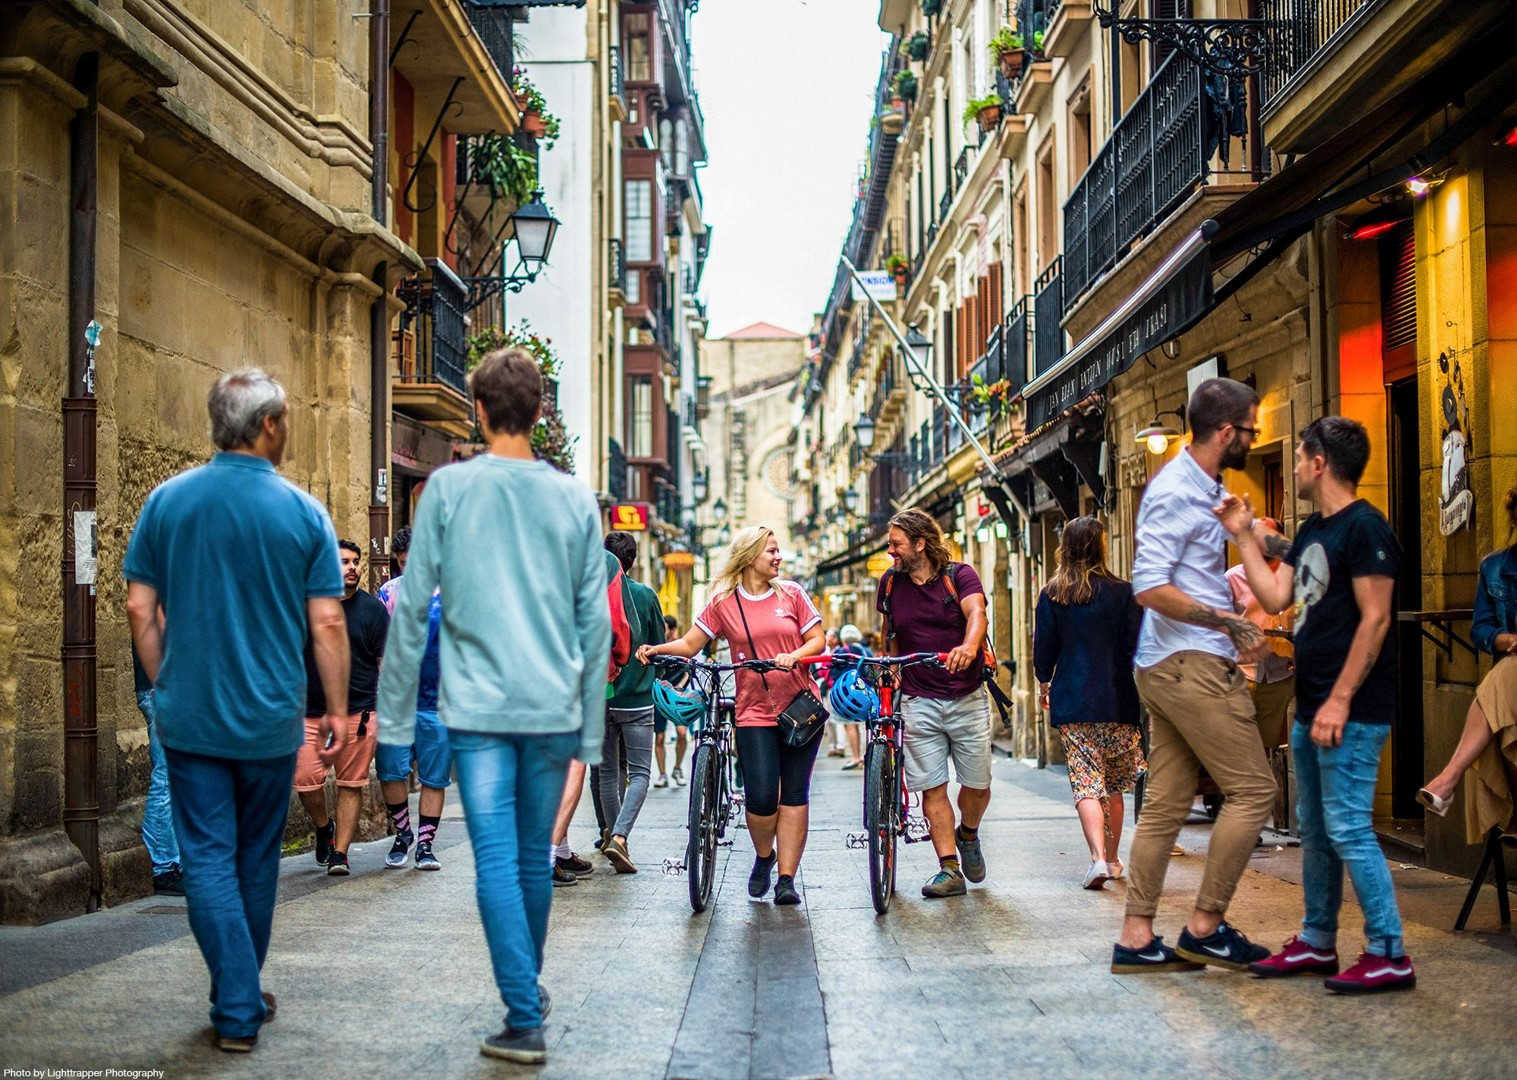 cycling-streets-of-spain-culture-self-guided-holiday.jpg - NEW! Spain - Bilbao to San Sebastian - Leisure Cycling